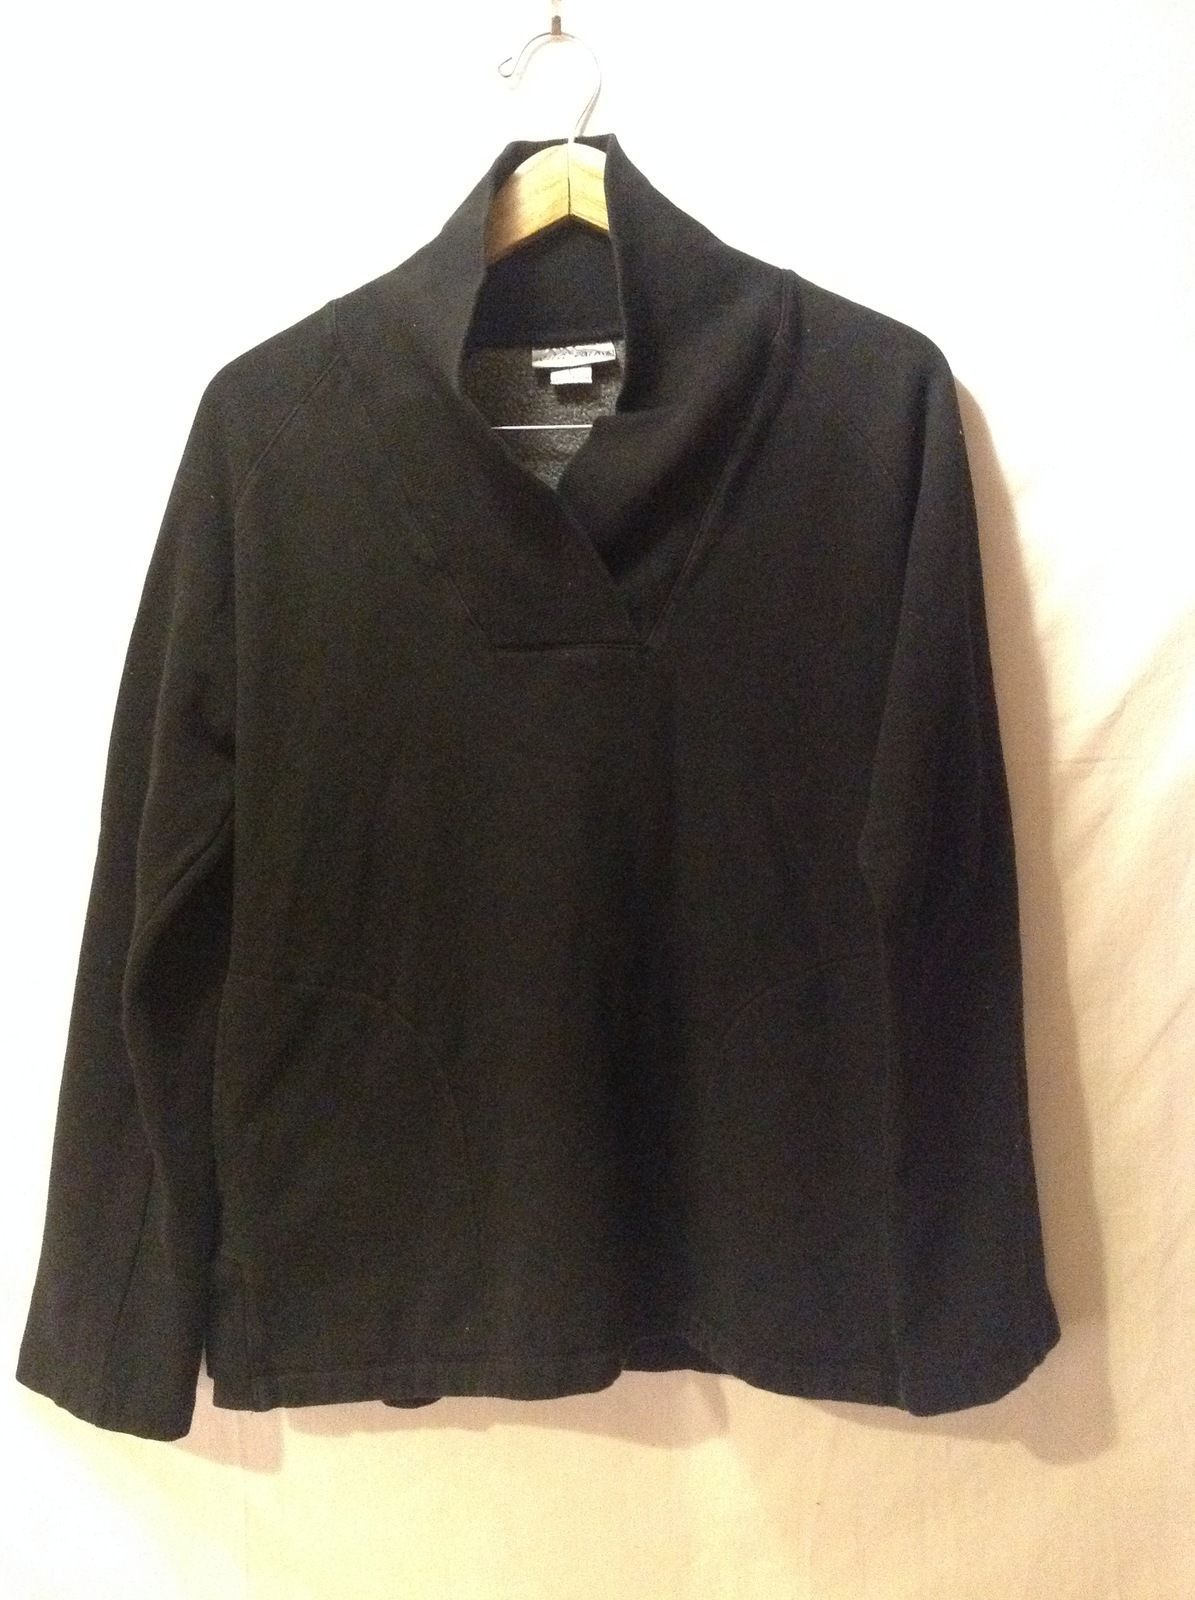 Wild Palms Black Womans V-neck Sweater, Size Large